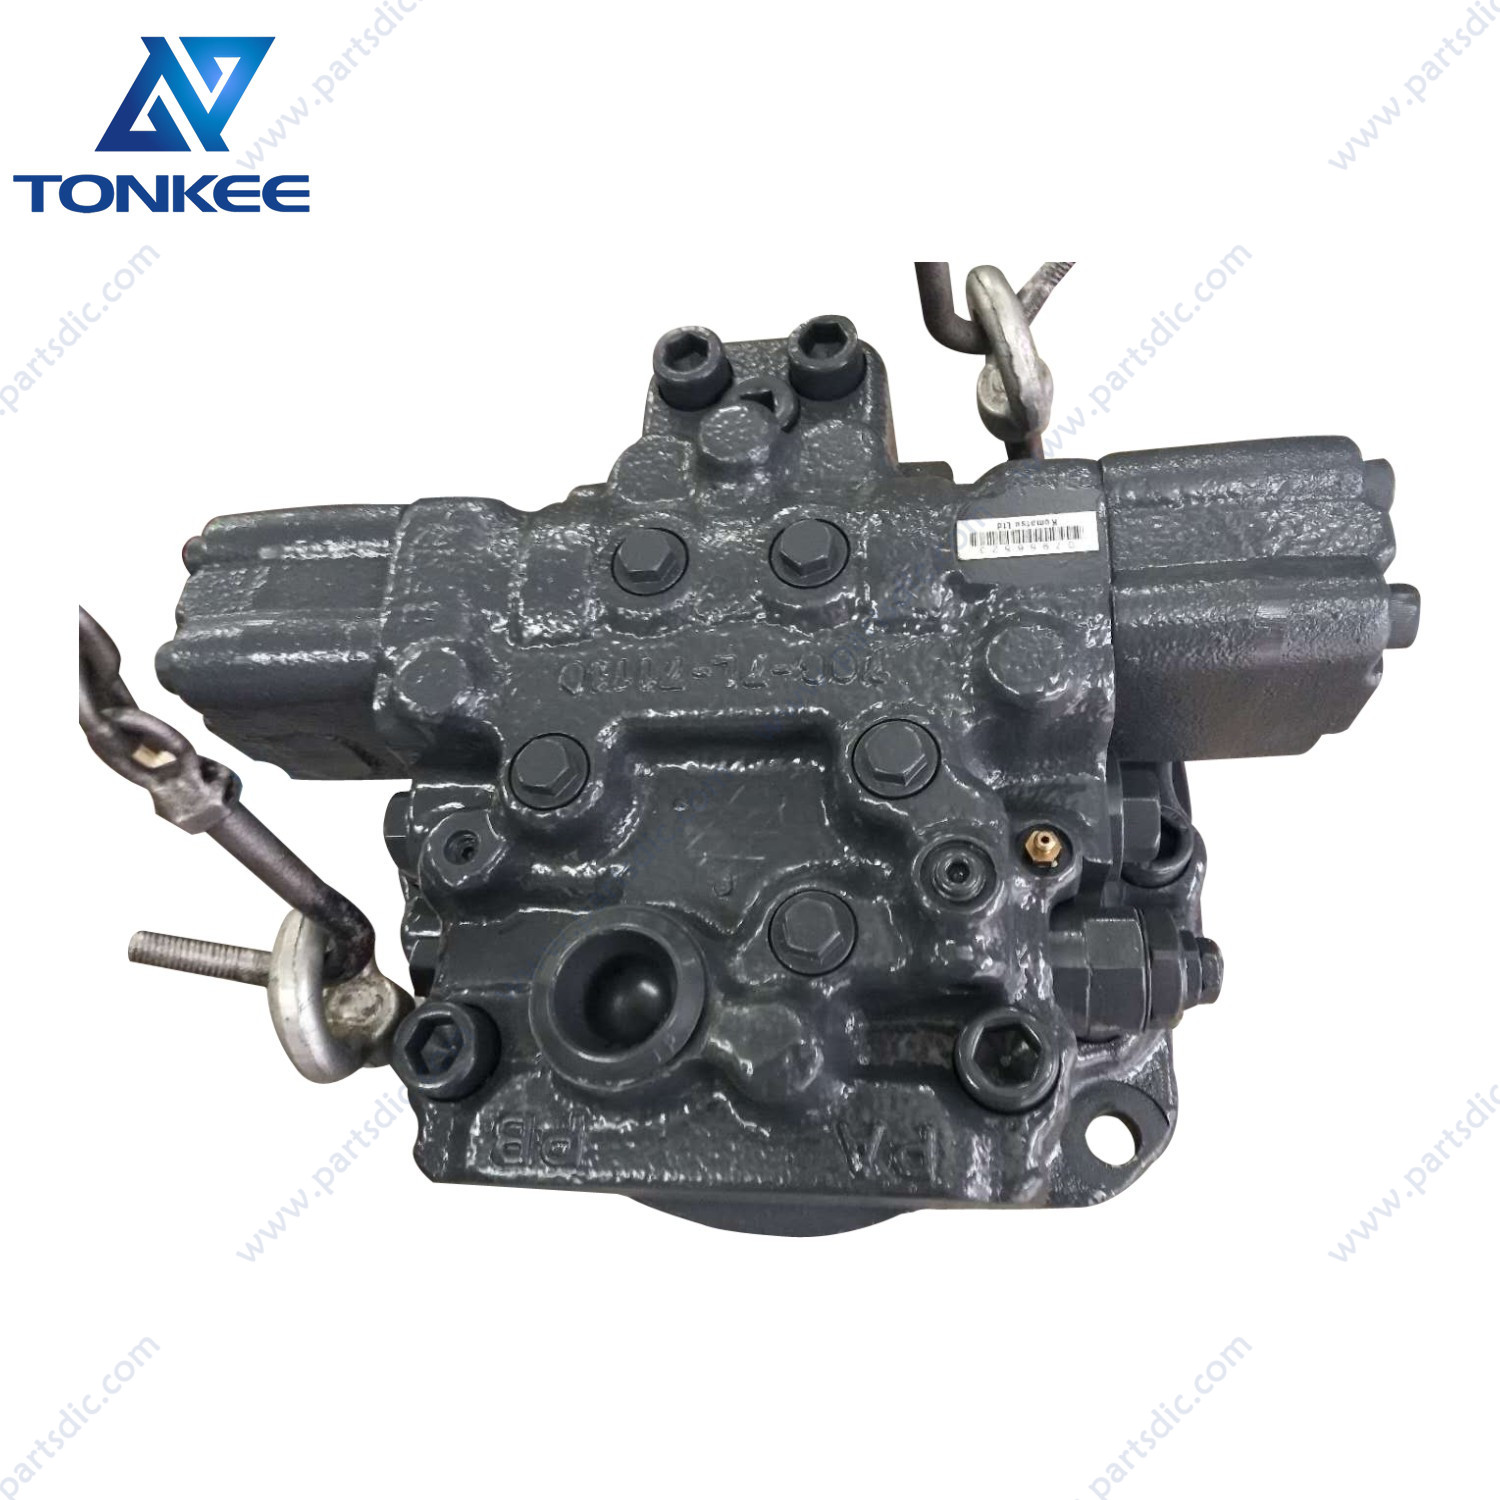 PC2000-8 hydraulic travel motor without final drive 706-7L-01110 travel motor assy excavator